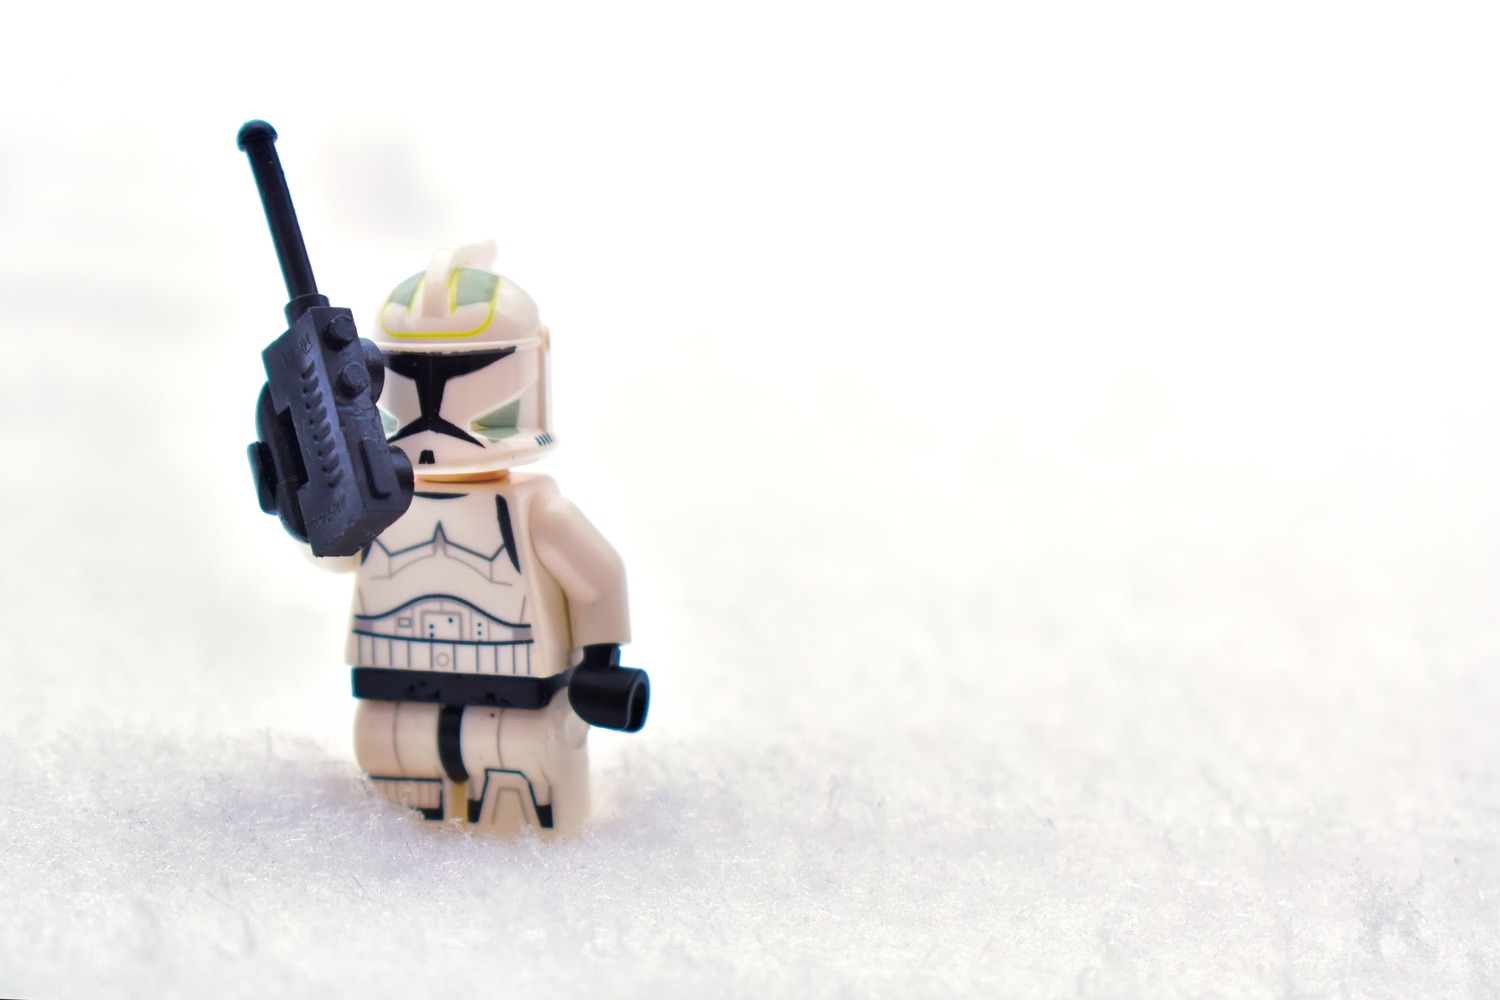 Hoth Trooper by Matthew Lacy